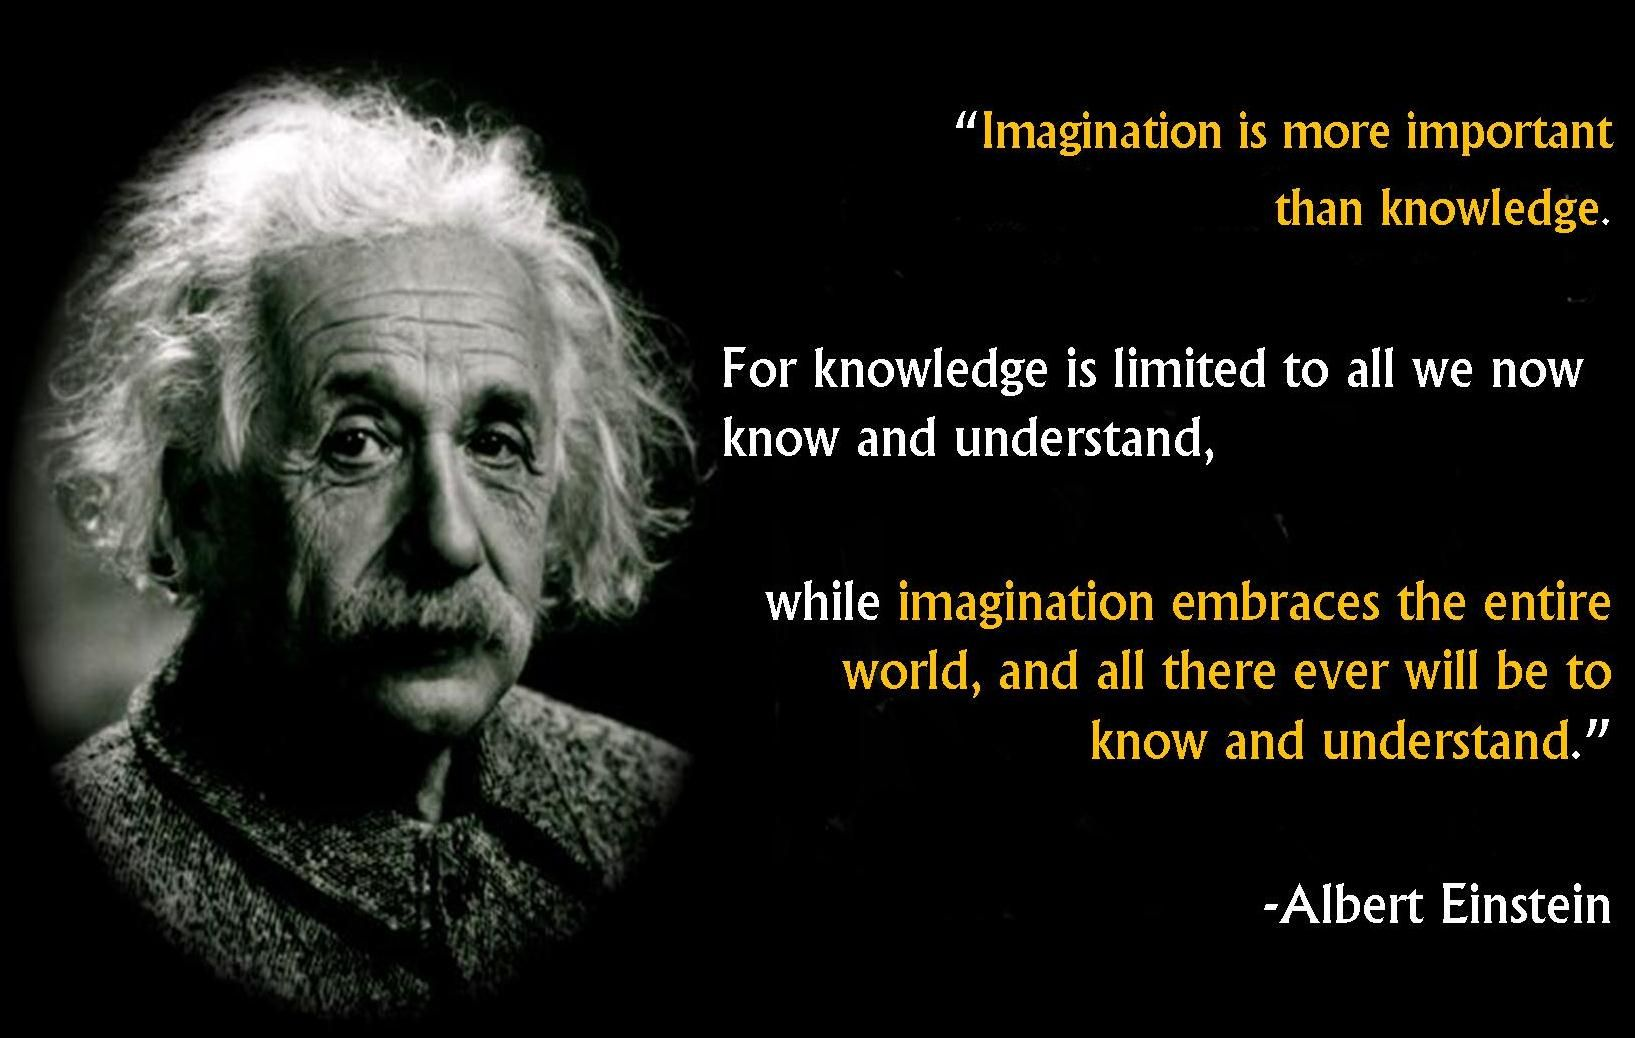 Pin By Alexa Archambault On Quoteswordspuzzles Quotes Einstein